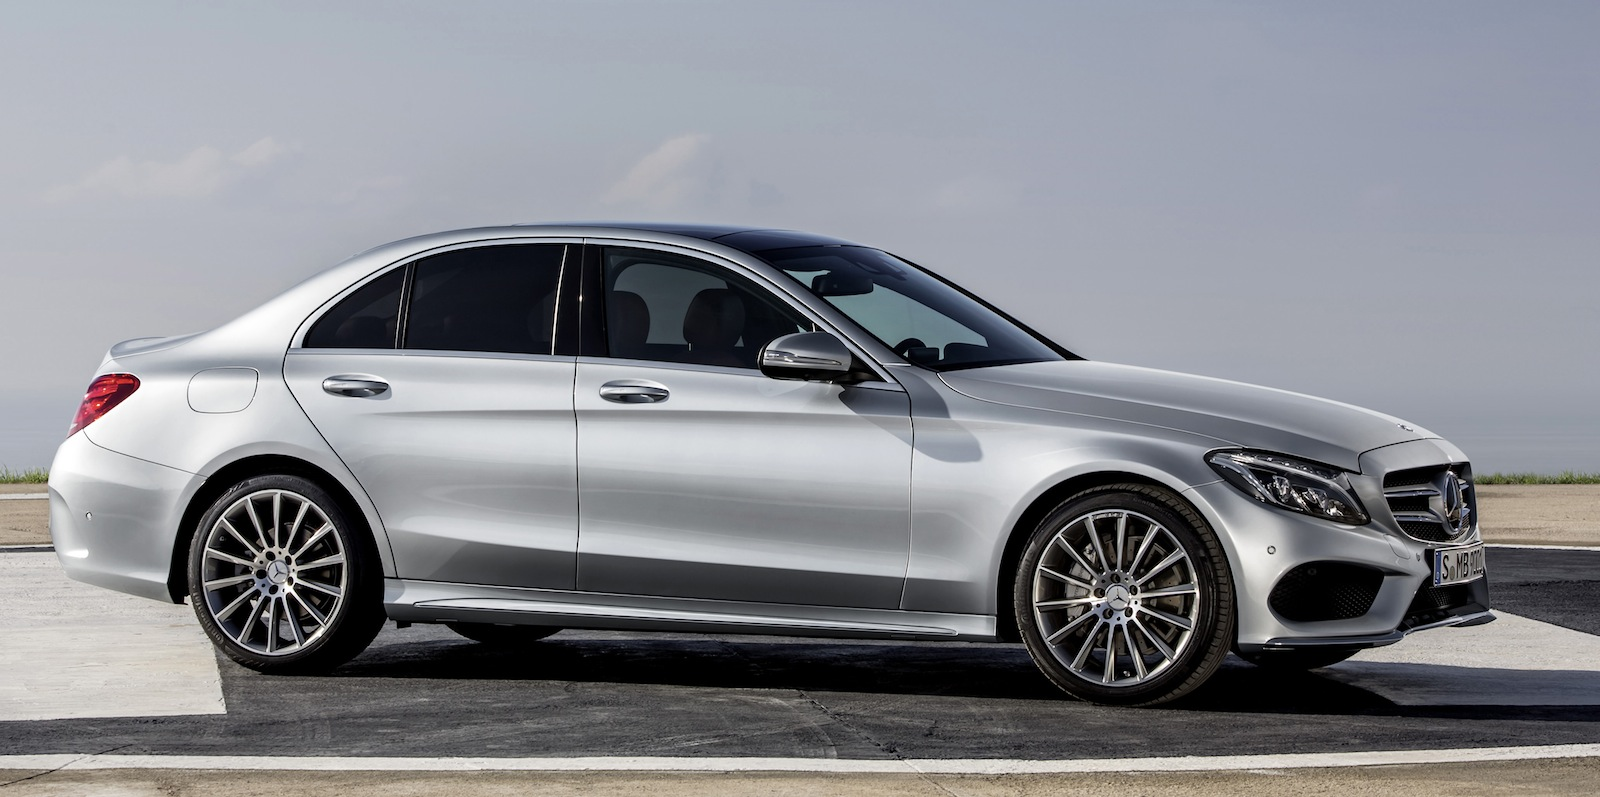 Mustang Sport Wagon >> 2014 Mercedes-Benz C-Class: next-gen premium mid-sizer revealed - photos | CarAdvice